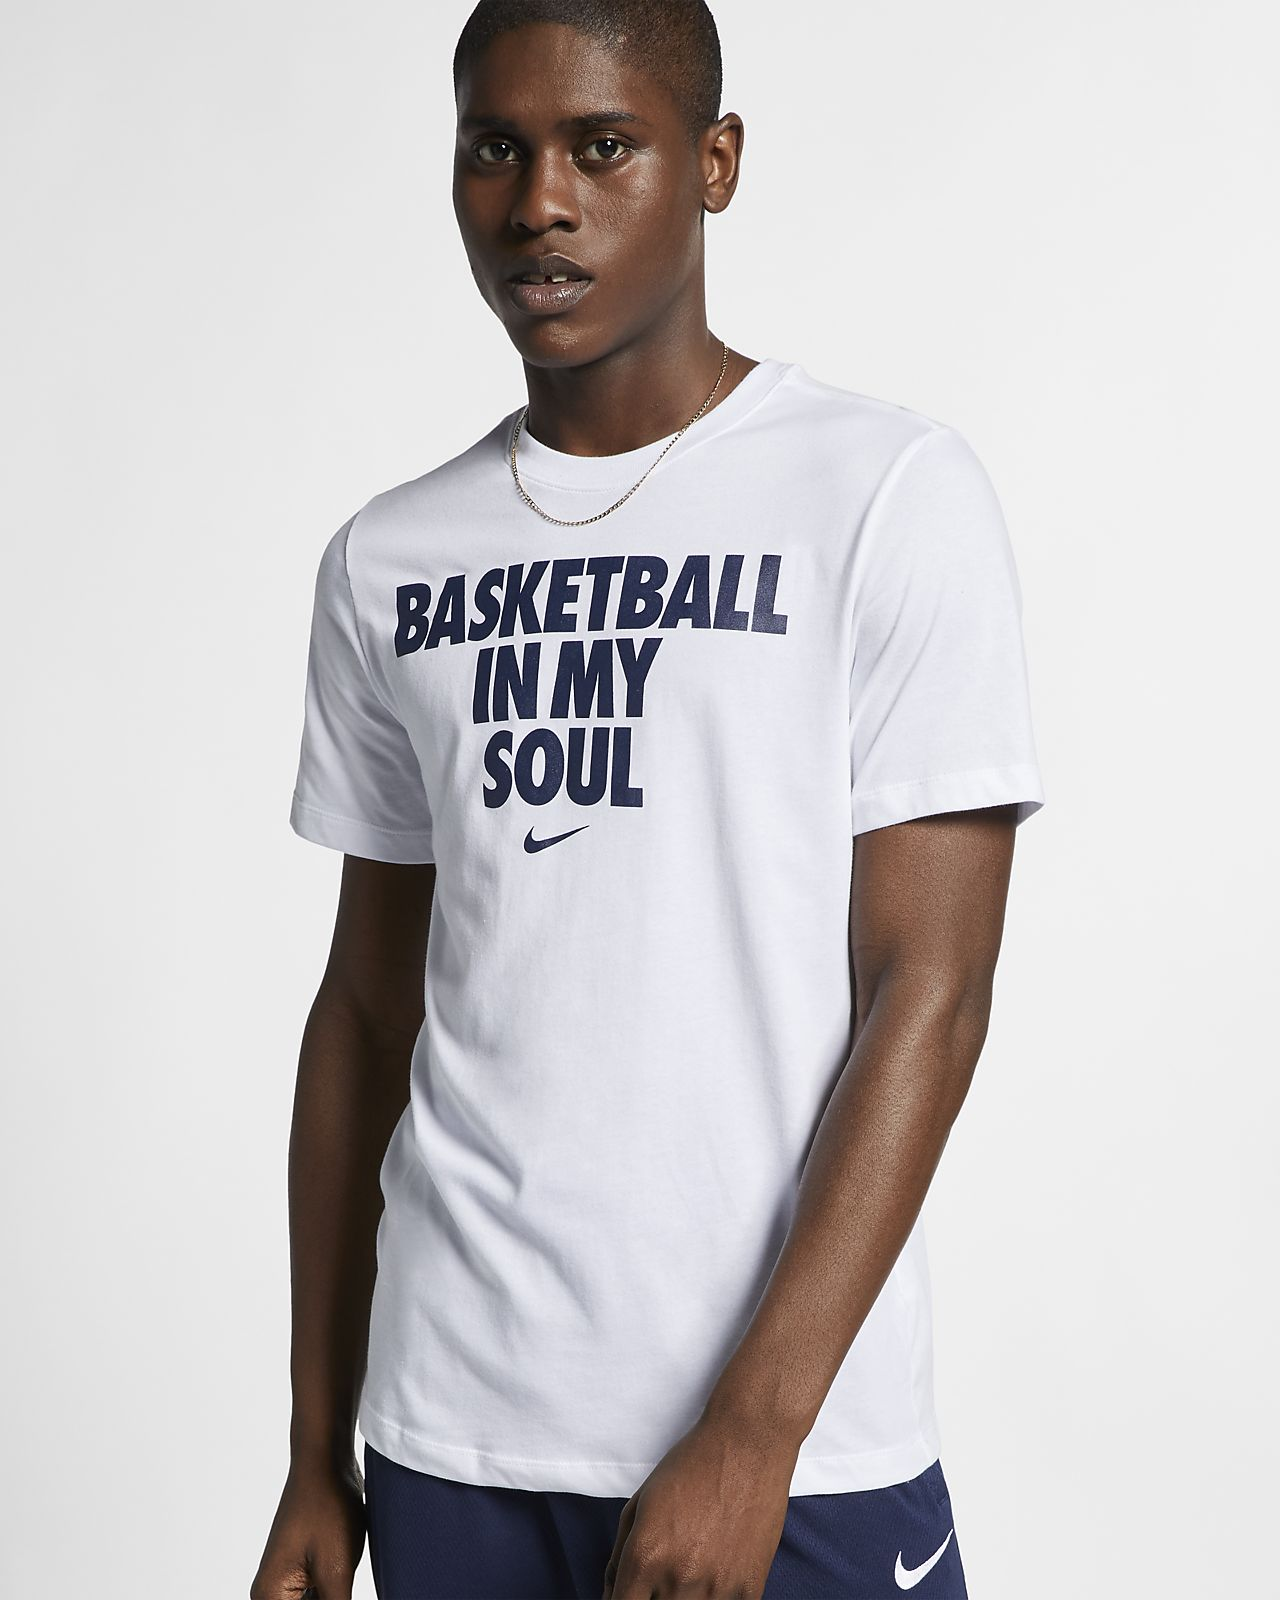 Nike Dri-FIT Basketball-T-Shirt für Herren